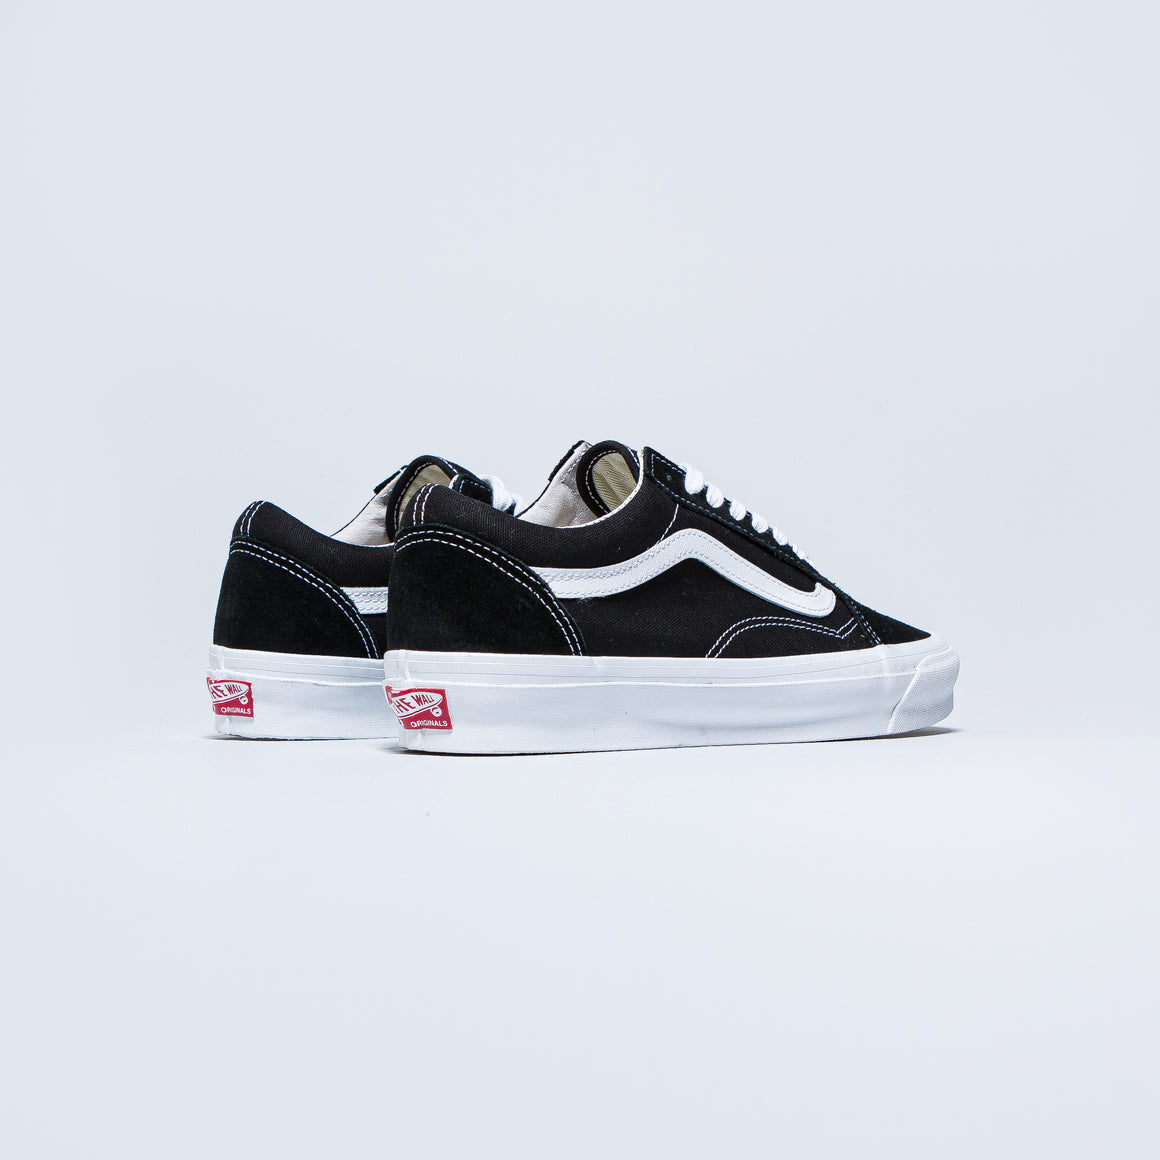 Vans - Vault OG Old Skool LX - Black/True White - Up There